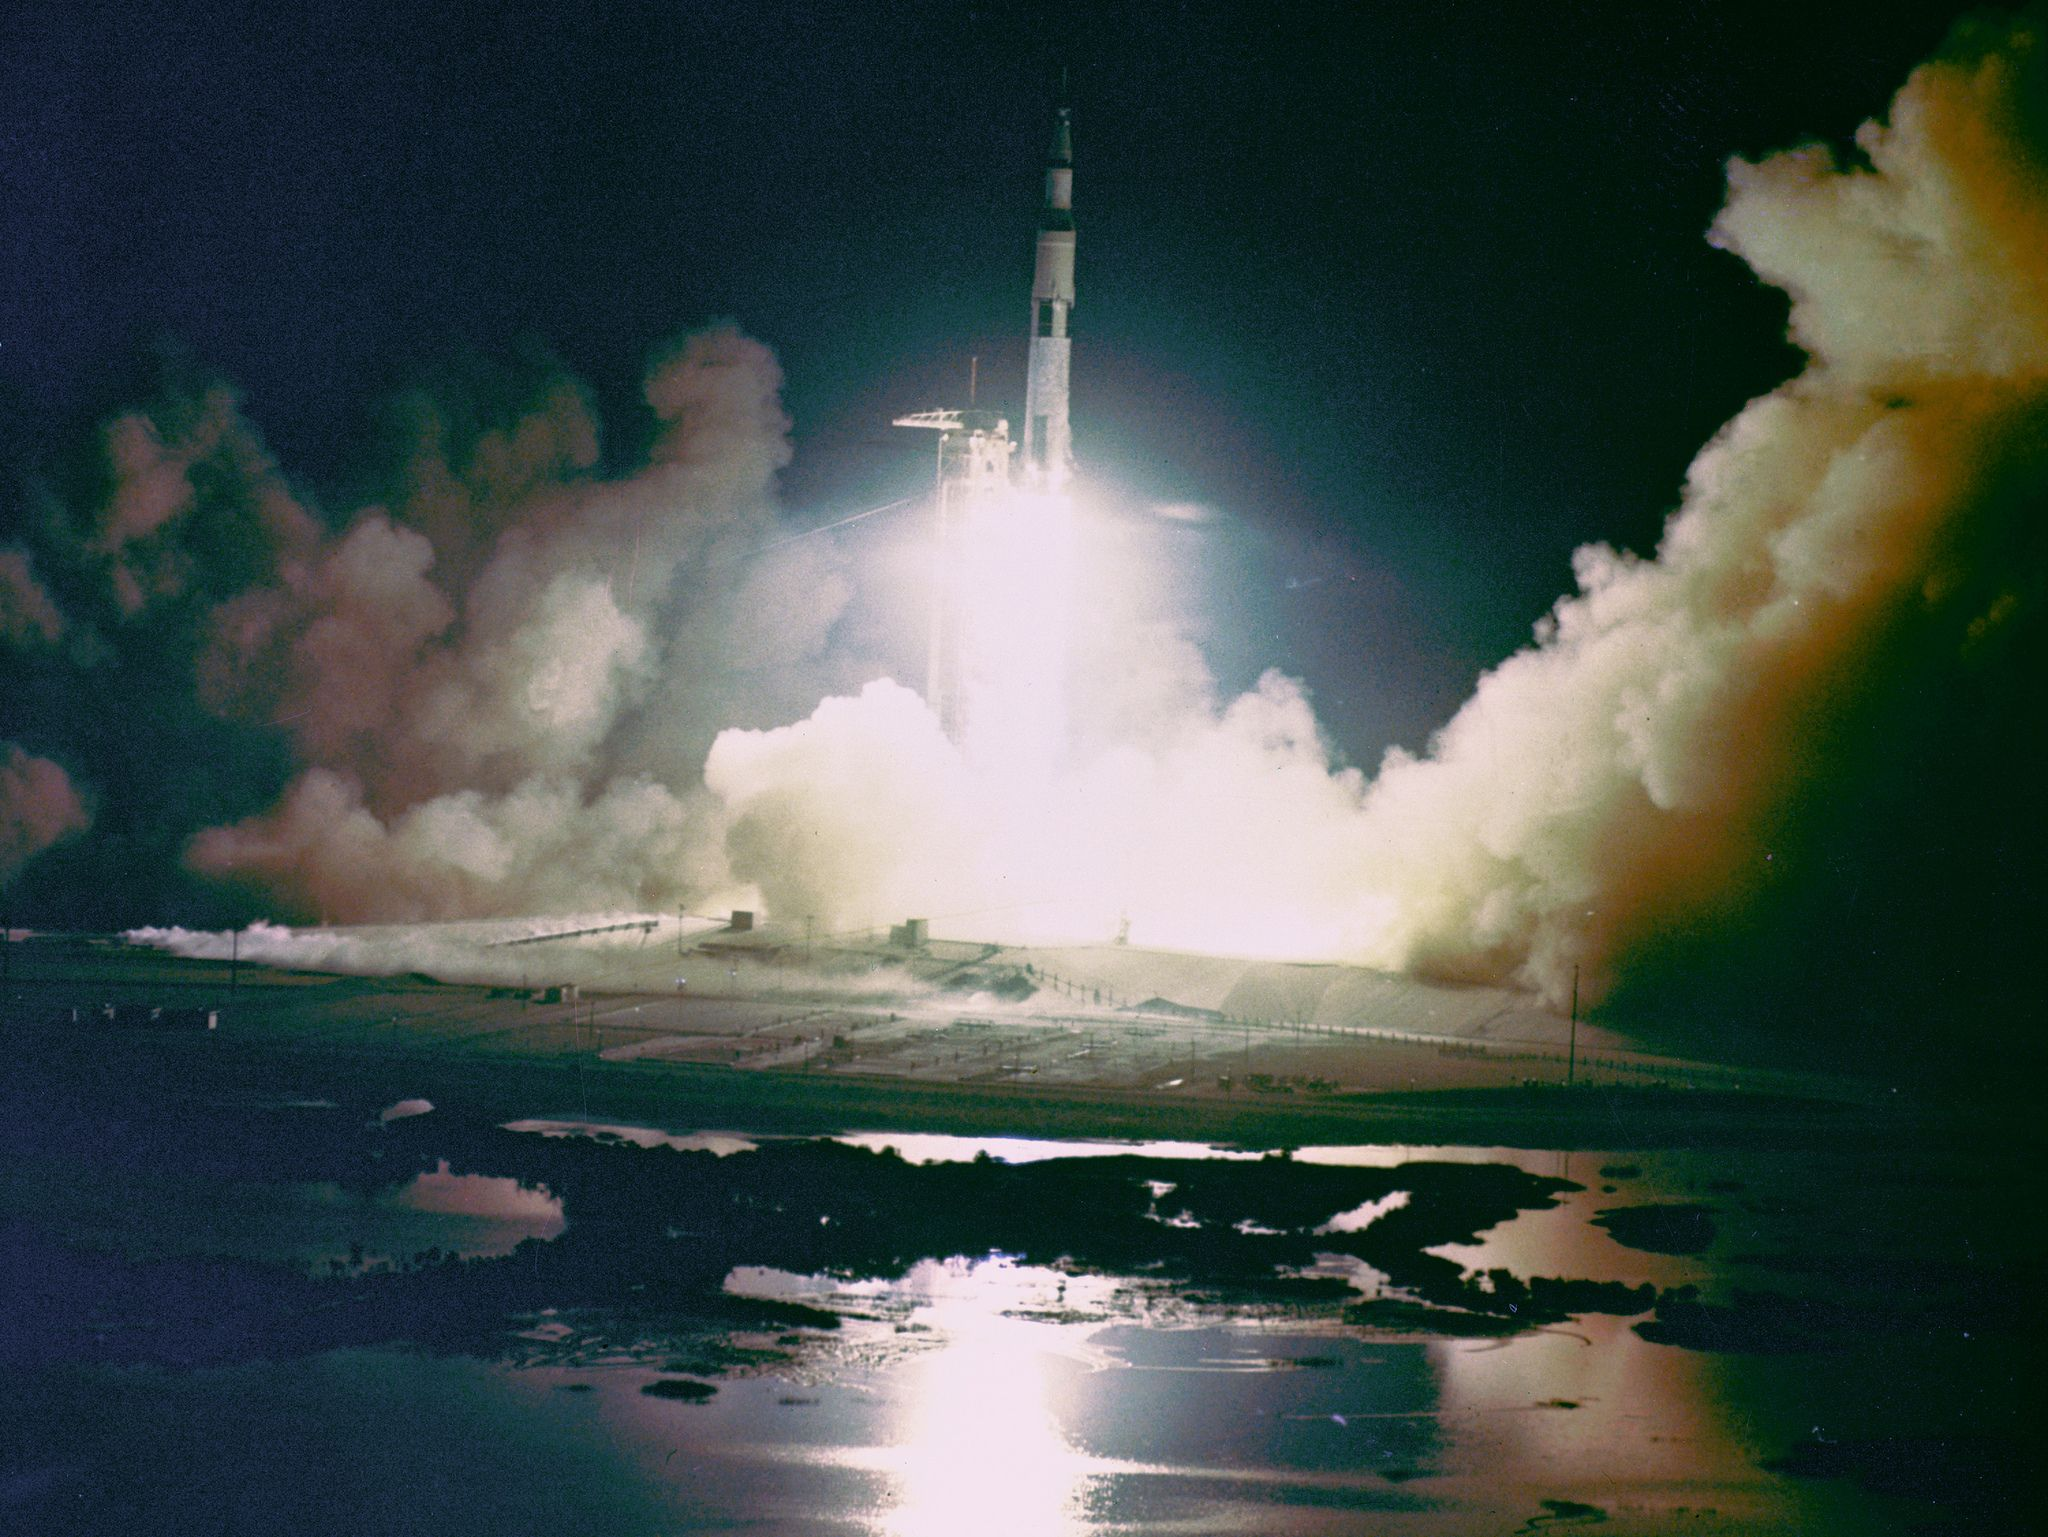 https://flic.kr/p/fpYaB5 | Apollo 17 Night Launch | Liftoff of the Apollo 17 Saturn V Moon Rocket from Pad A, Launch Complex 39, Kennedy Space Center, Florida, at 12:33 a.m., December 7, 1972. Apollo 17, the final lunar landing mission, was the first night launch of a Saturn V rocket.  Image # : S72-55070